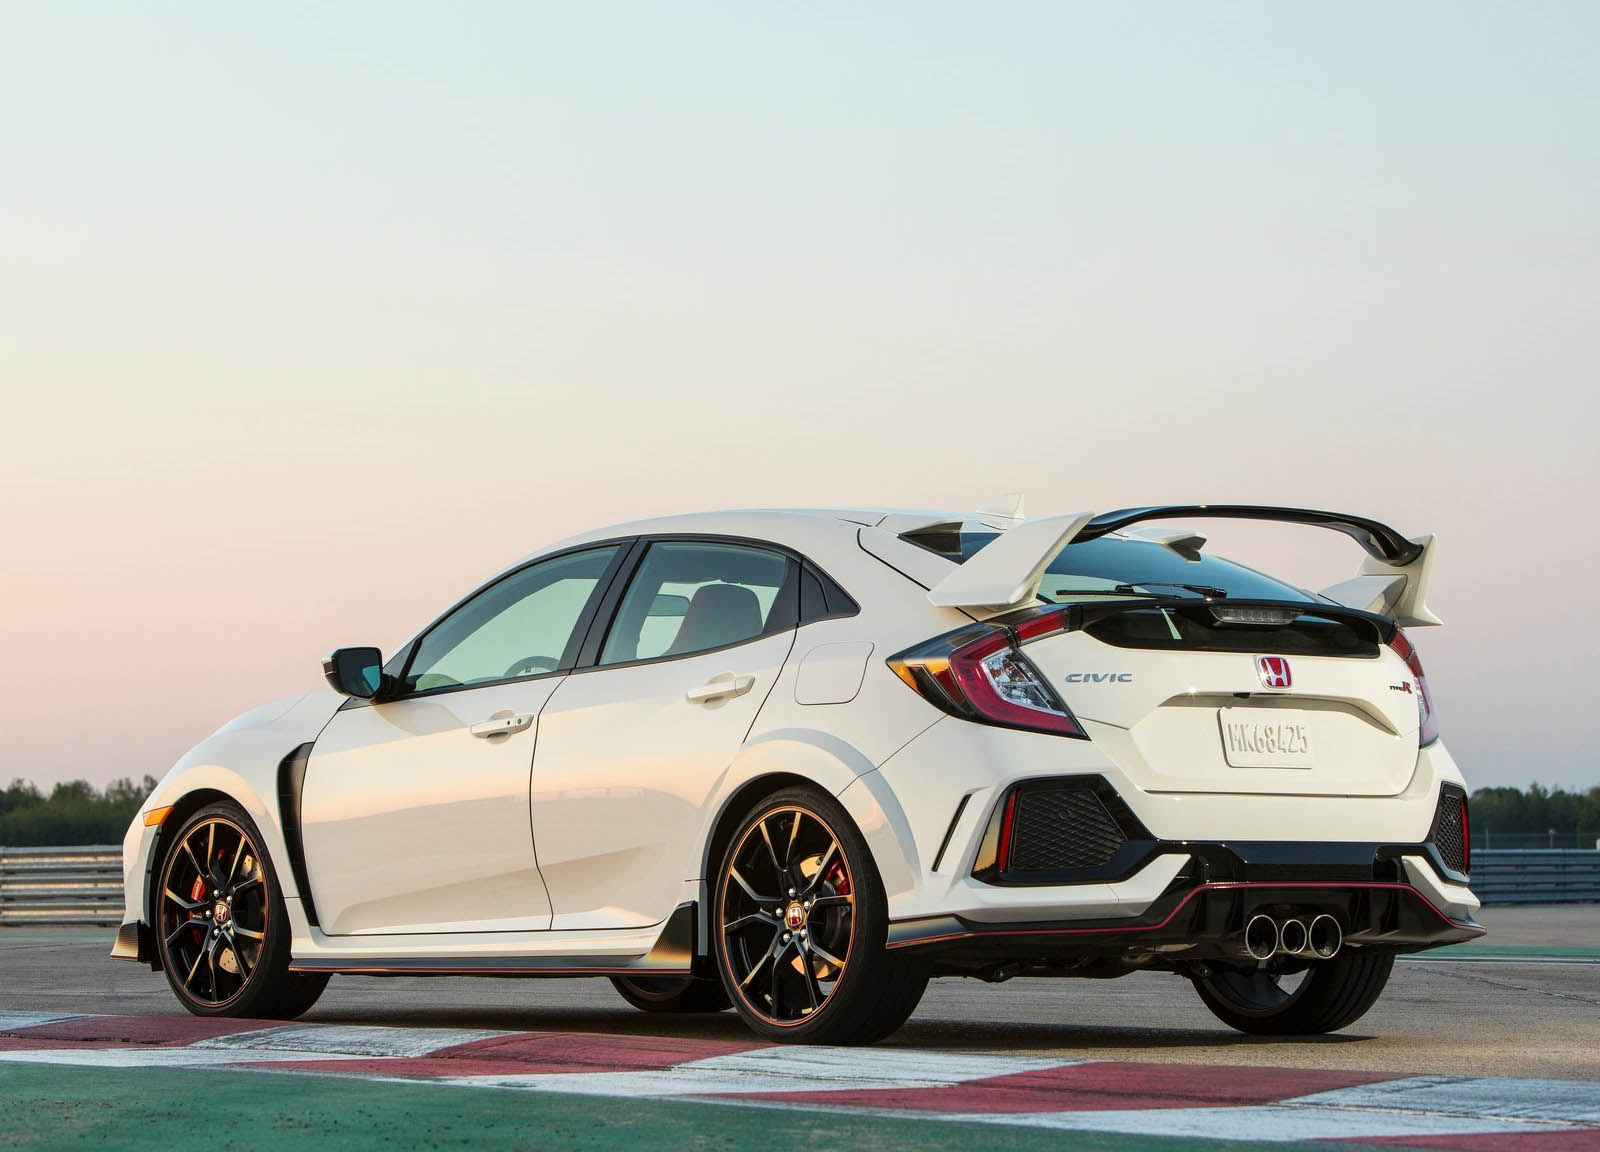 honda 39 s new civic type r is just the beginning says chief. Black Bedroom Furniture Sets. Home Design Ideas